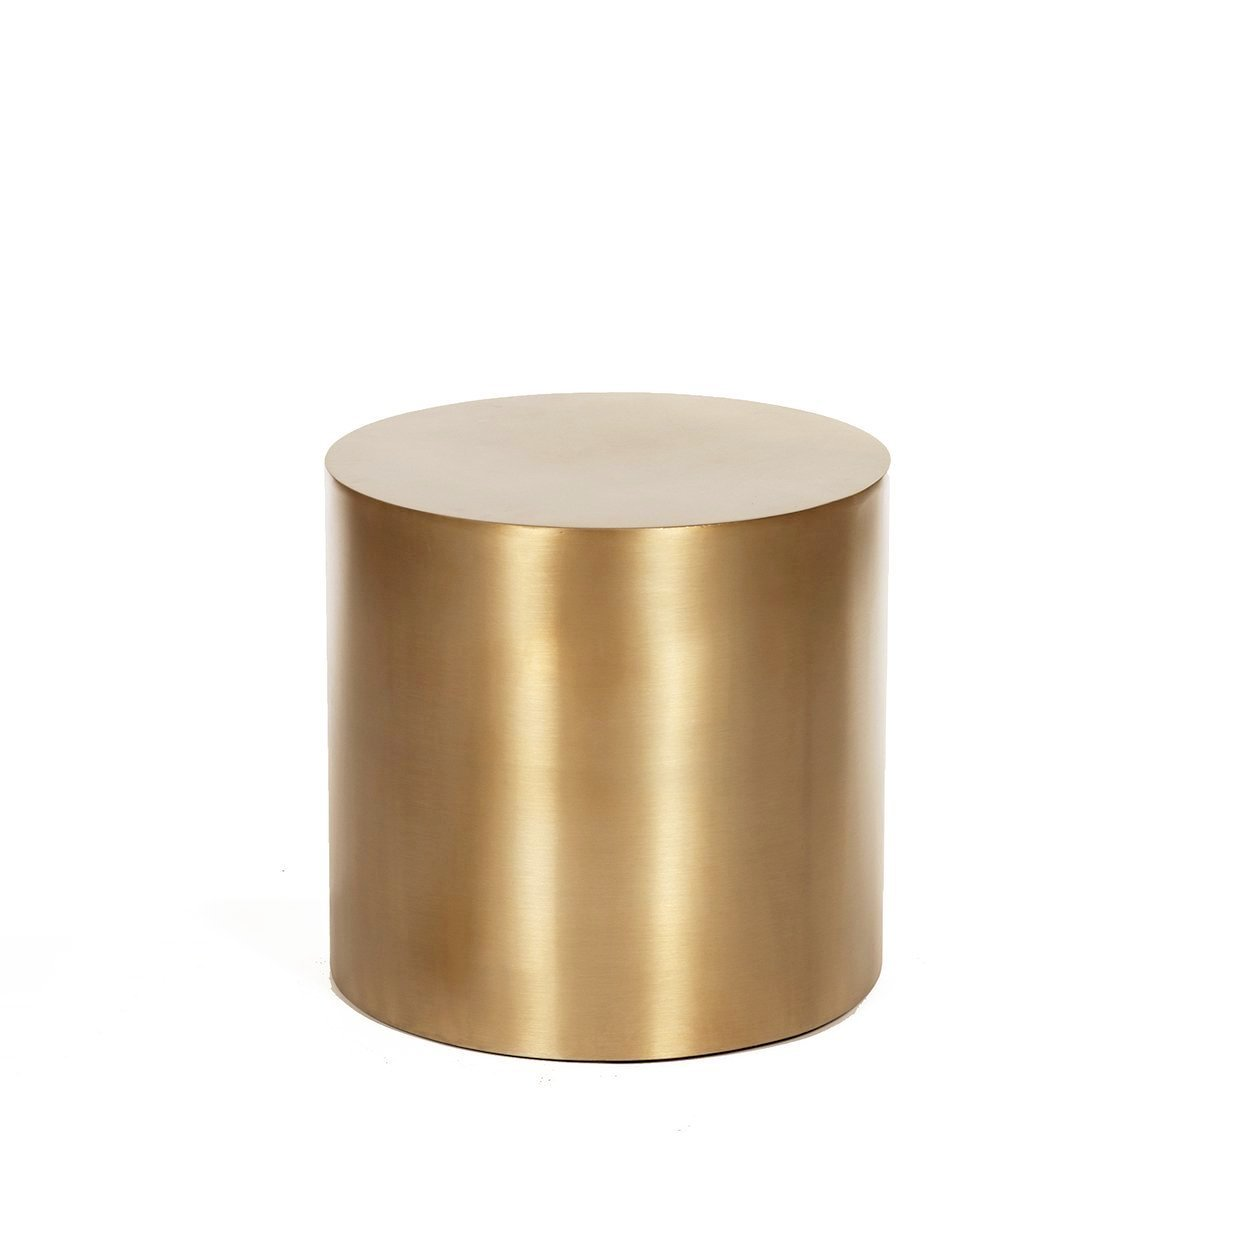 [FVT148BRASS] Fay Side table